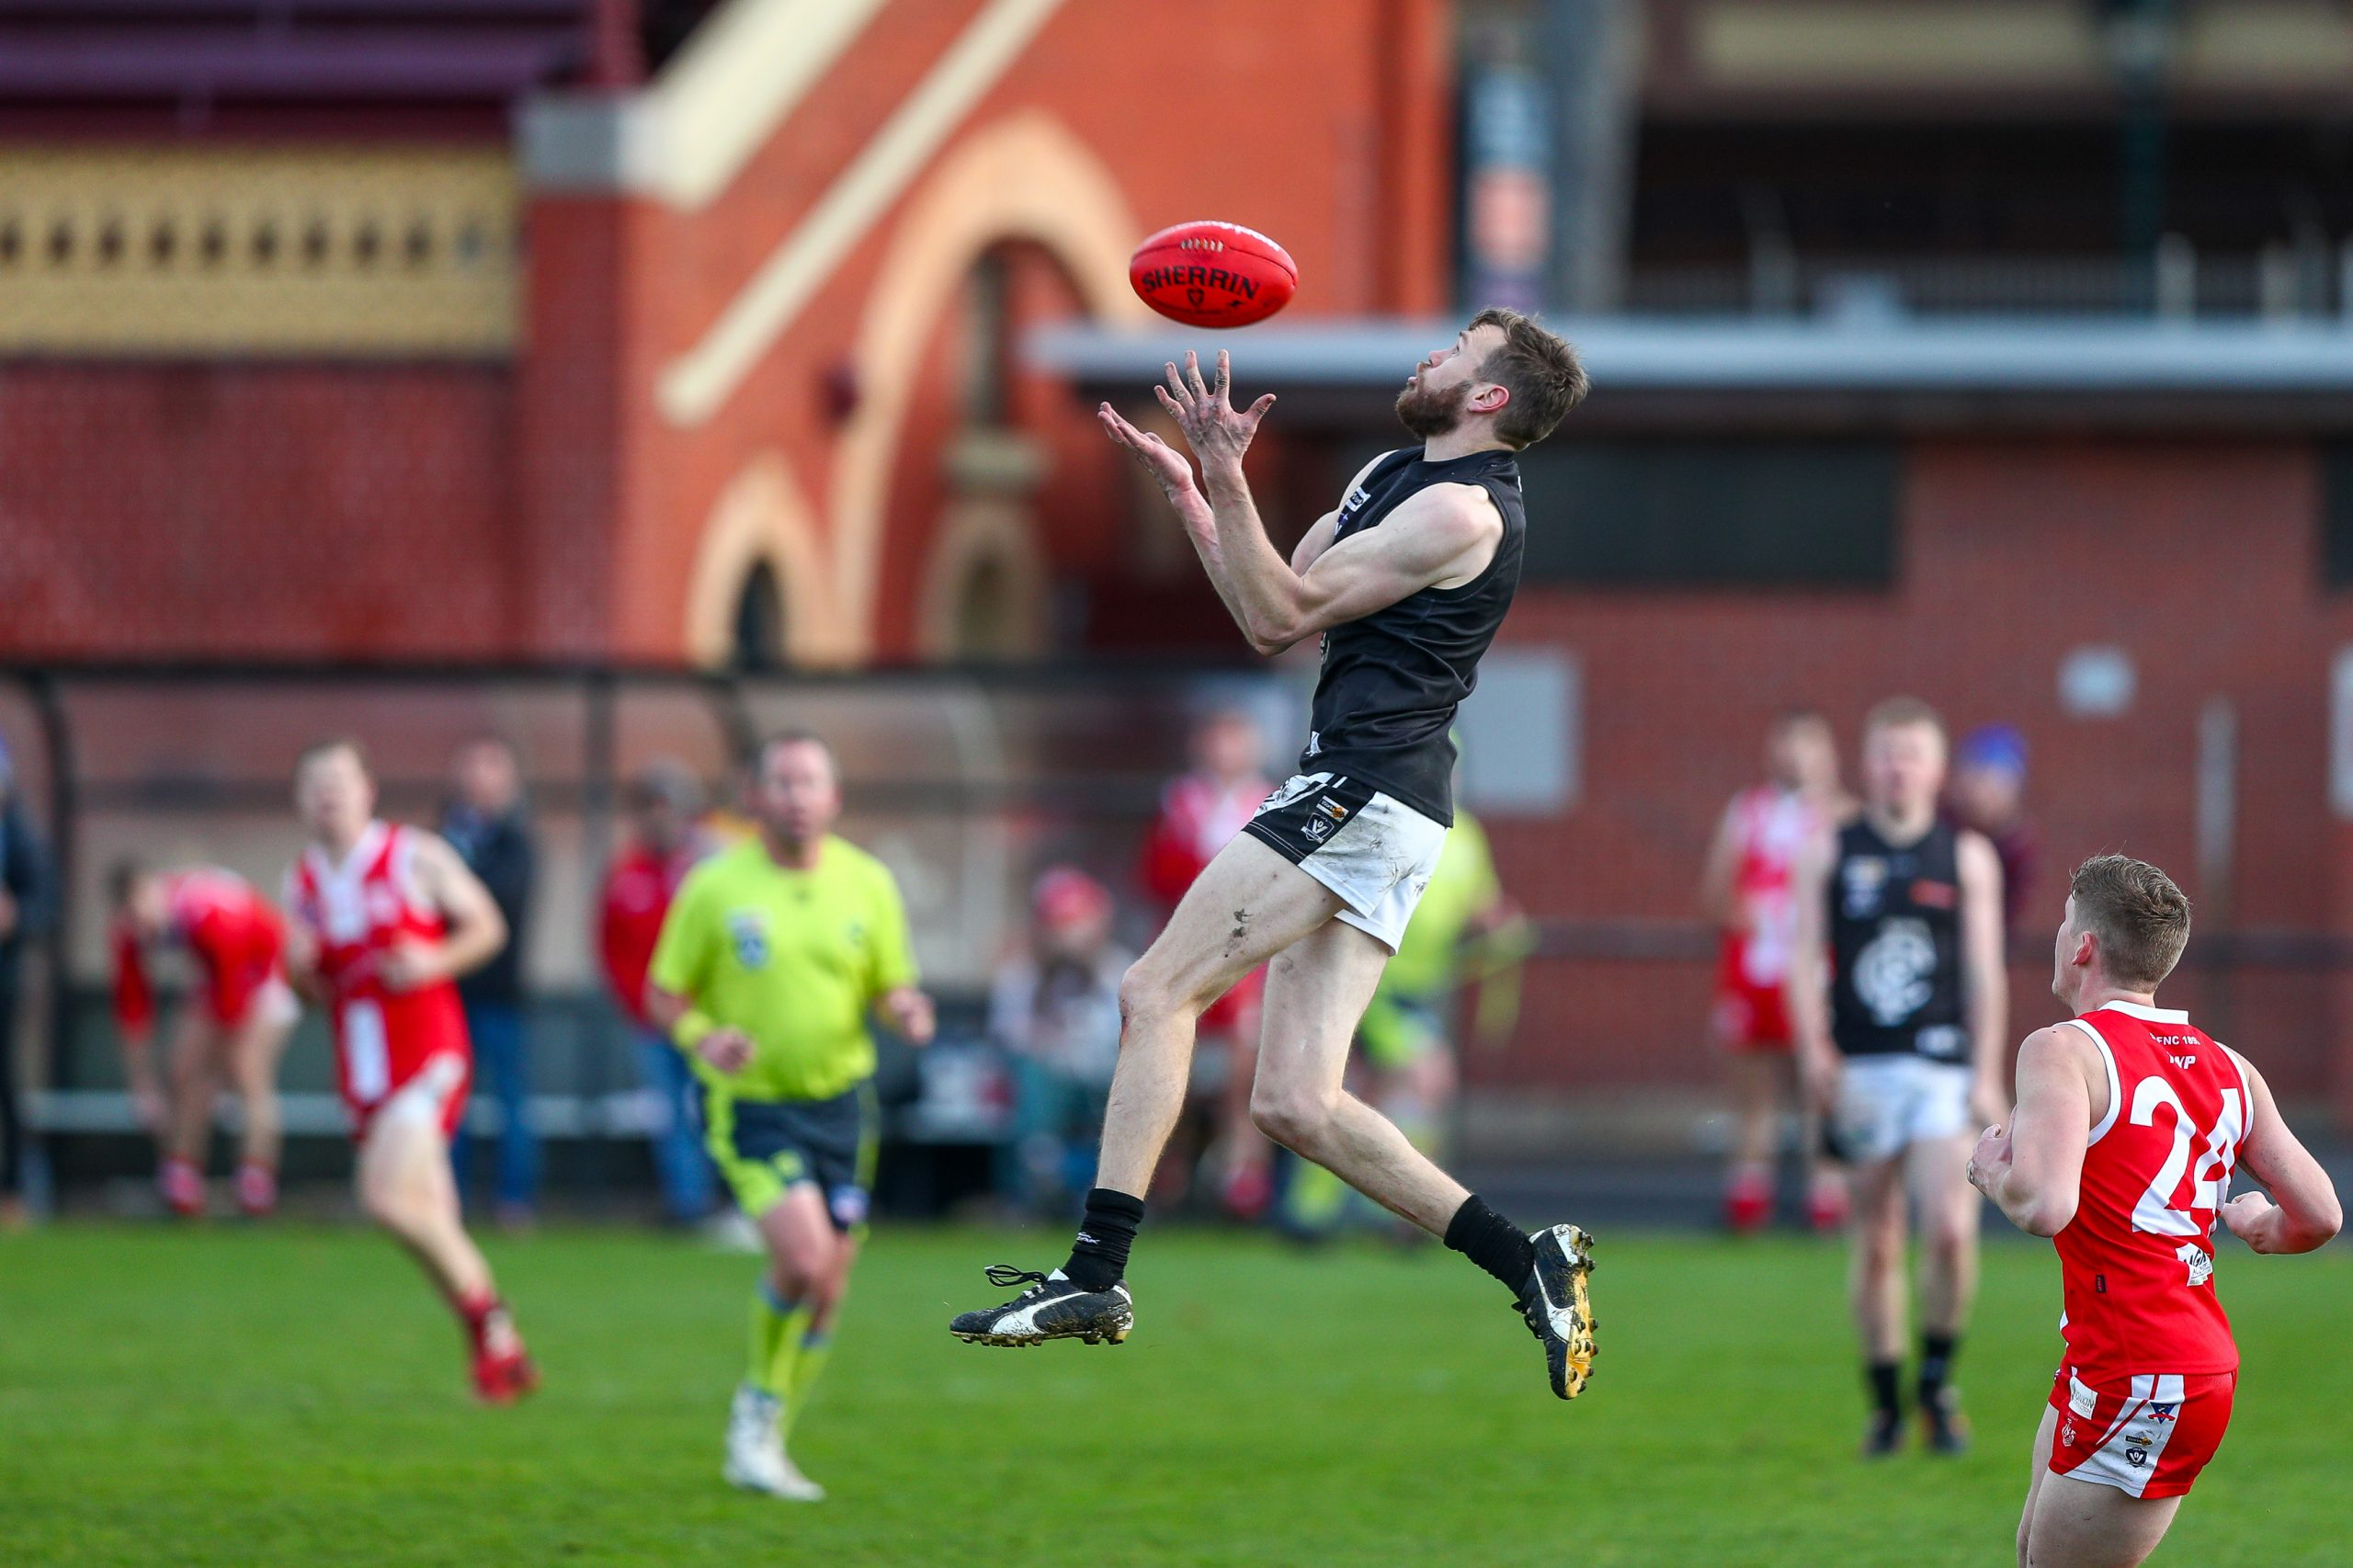 Magpie recruit Liam Wilkinson has had a stellar year for Castlemaine. Photo: Peter Banko.